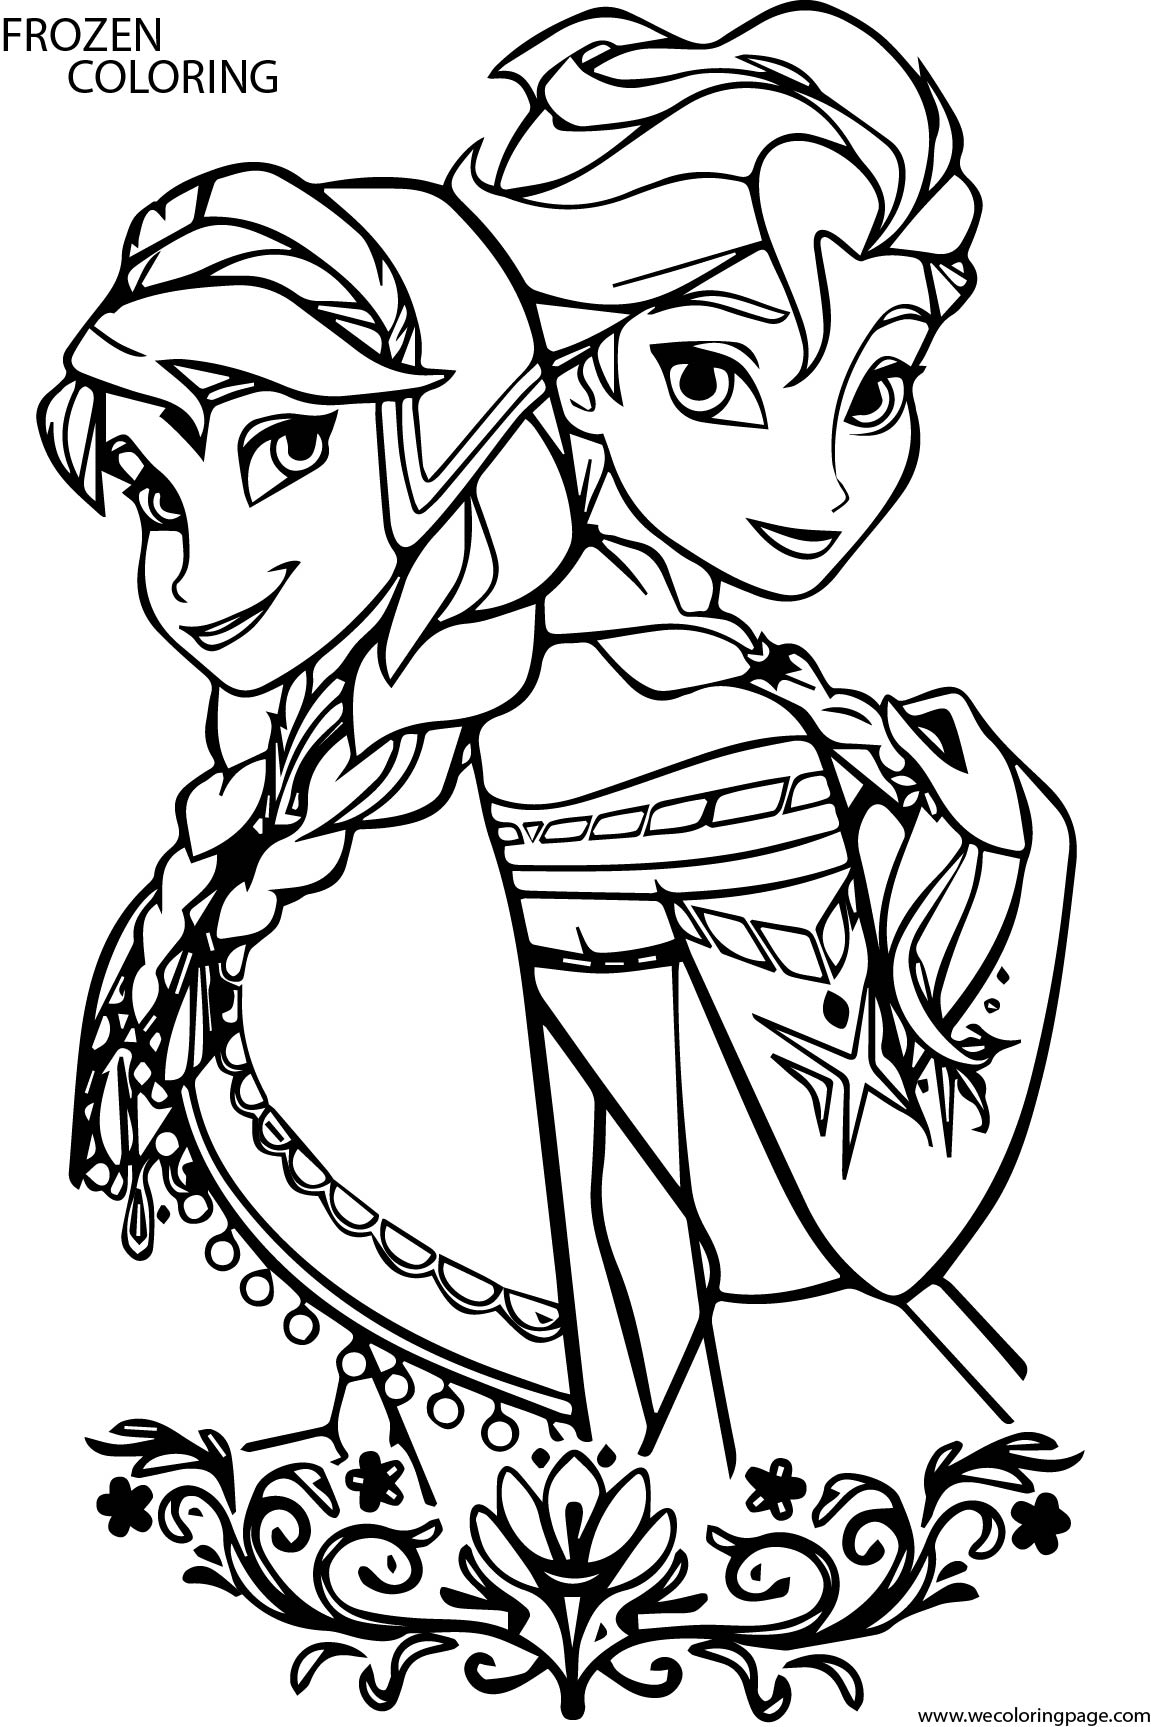 frozen cartoon characters coloring pages - photo#9